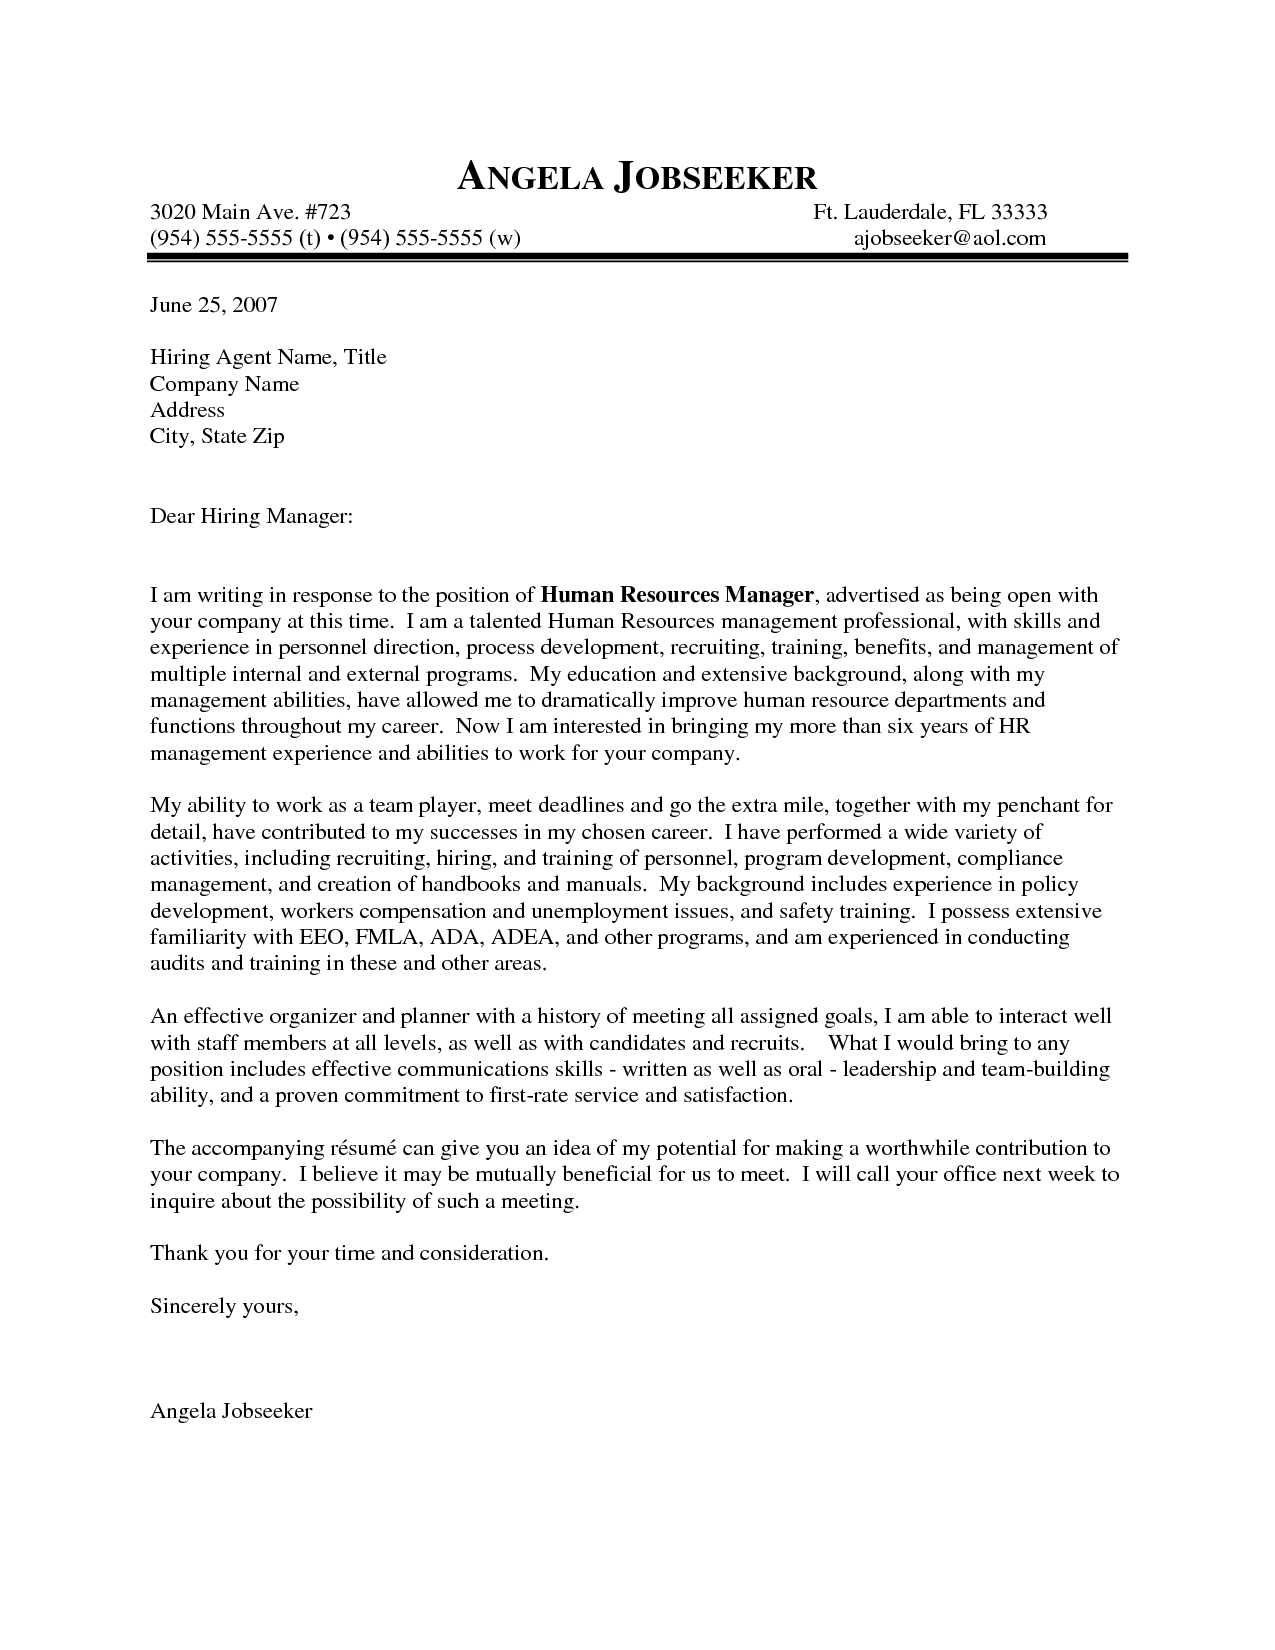 Outstanding cover letter examples hr manager cover letter outstanding cover letter examples hr manager cover letter example madrichimfo Image collections